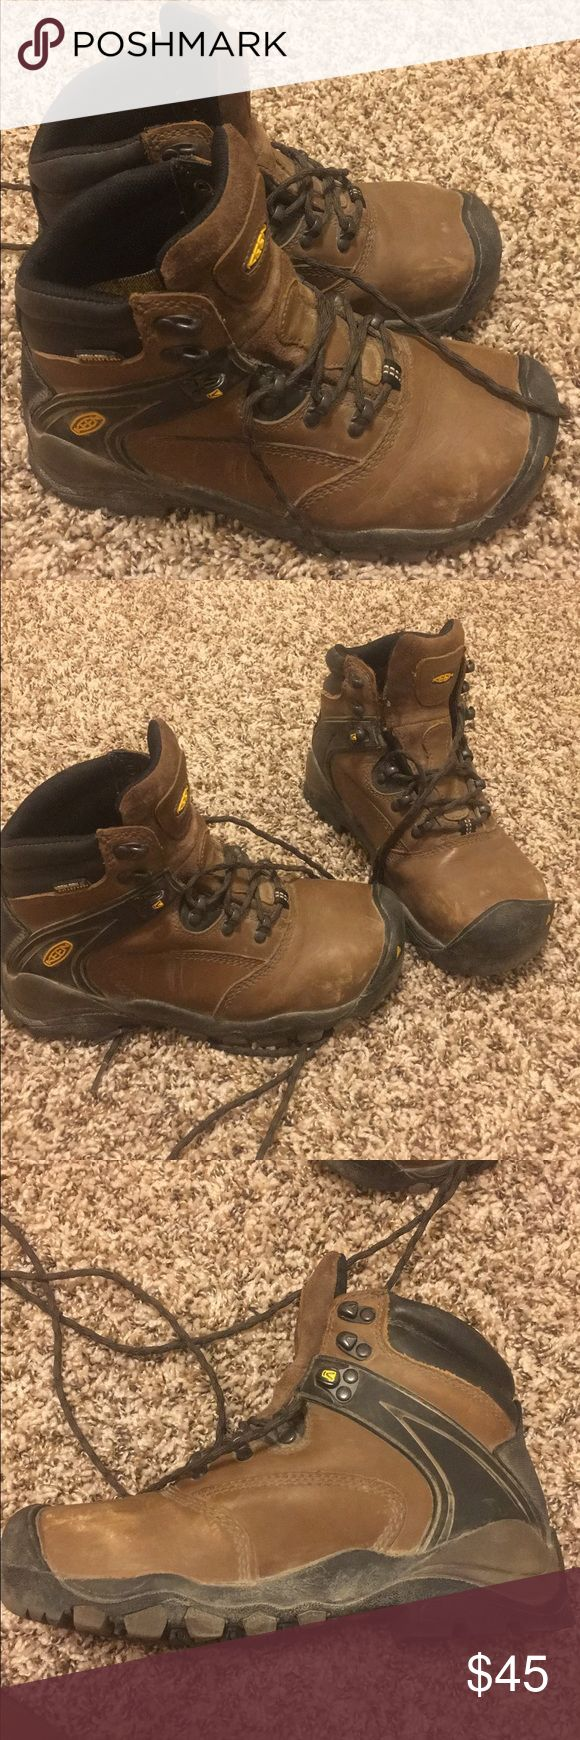 •Keen• waterproof, steel toe boots Brown with black lace up boots Keen Shoes